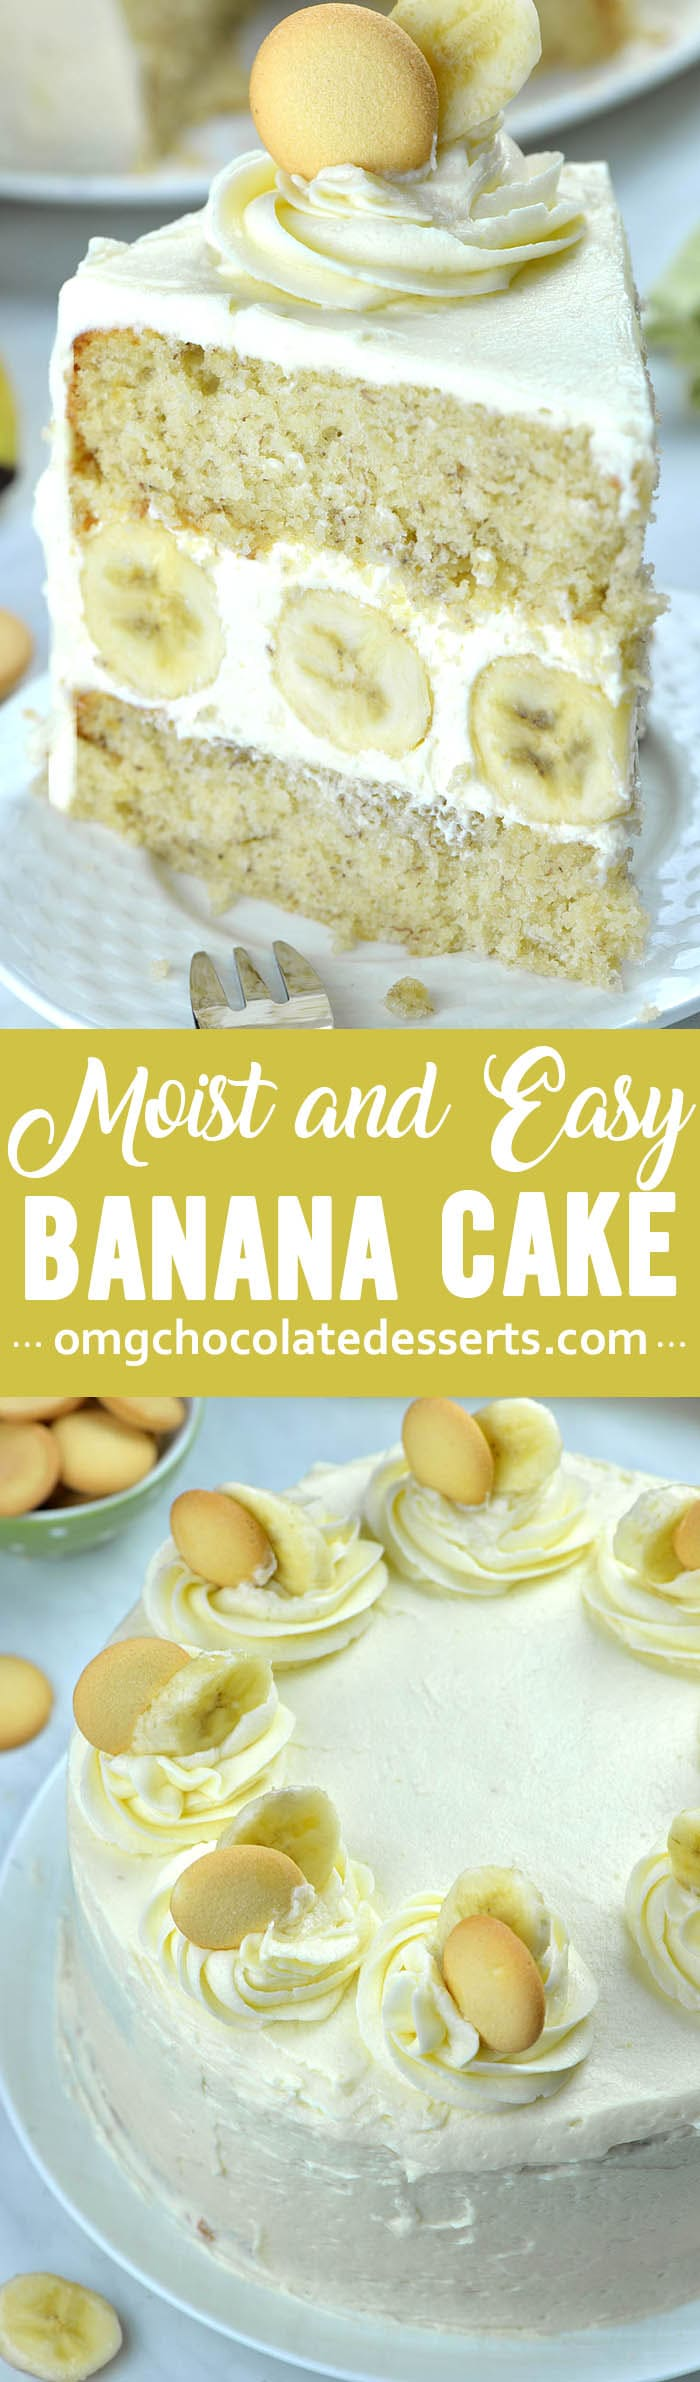 You will love this incredibly moist and easyBanana Cake with rich and fluffy Cream Cheese Frosting! Just like with banana bread, overripe (read: brown) bananas work bet for this recipe.